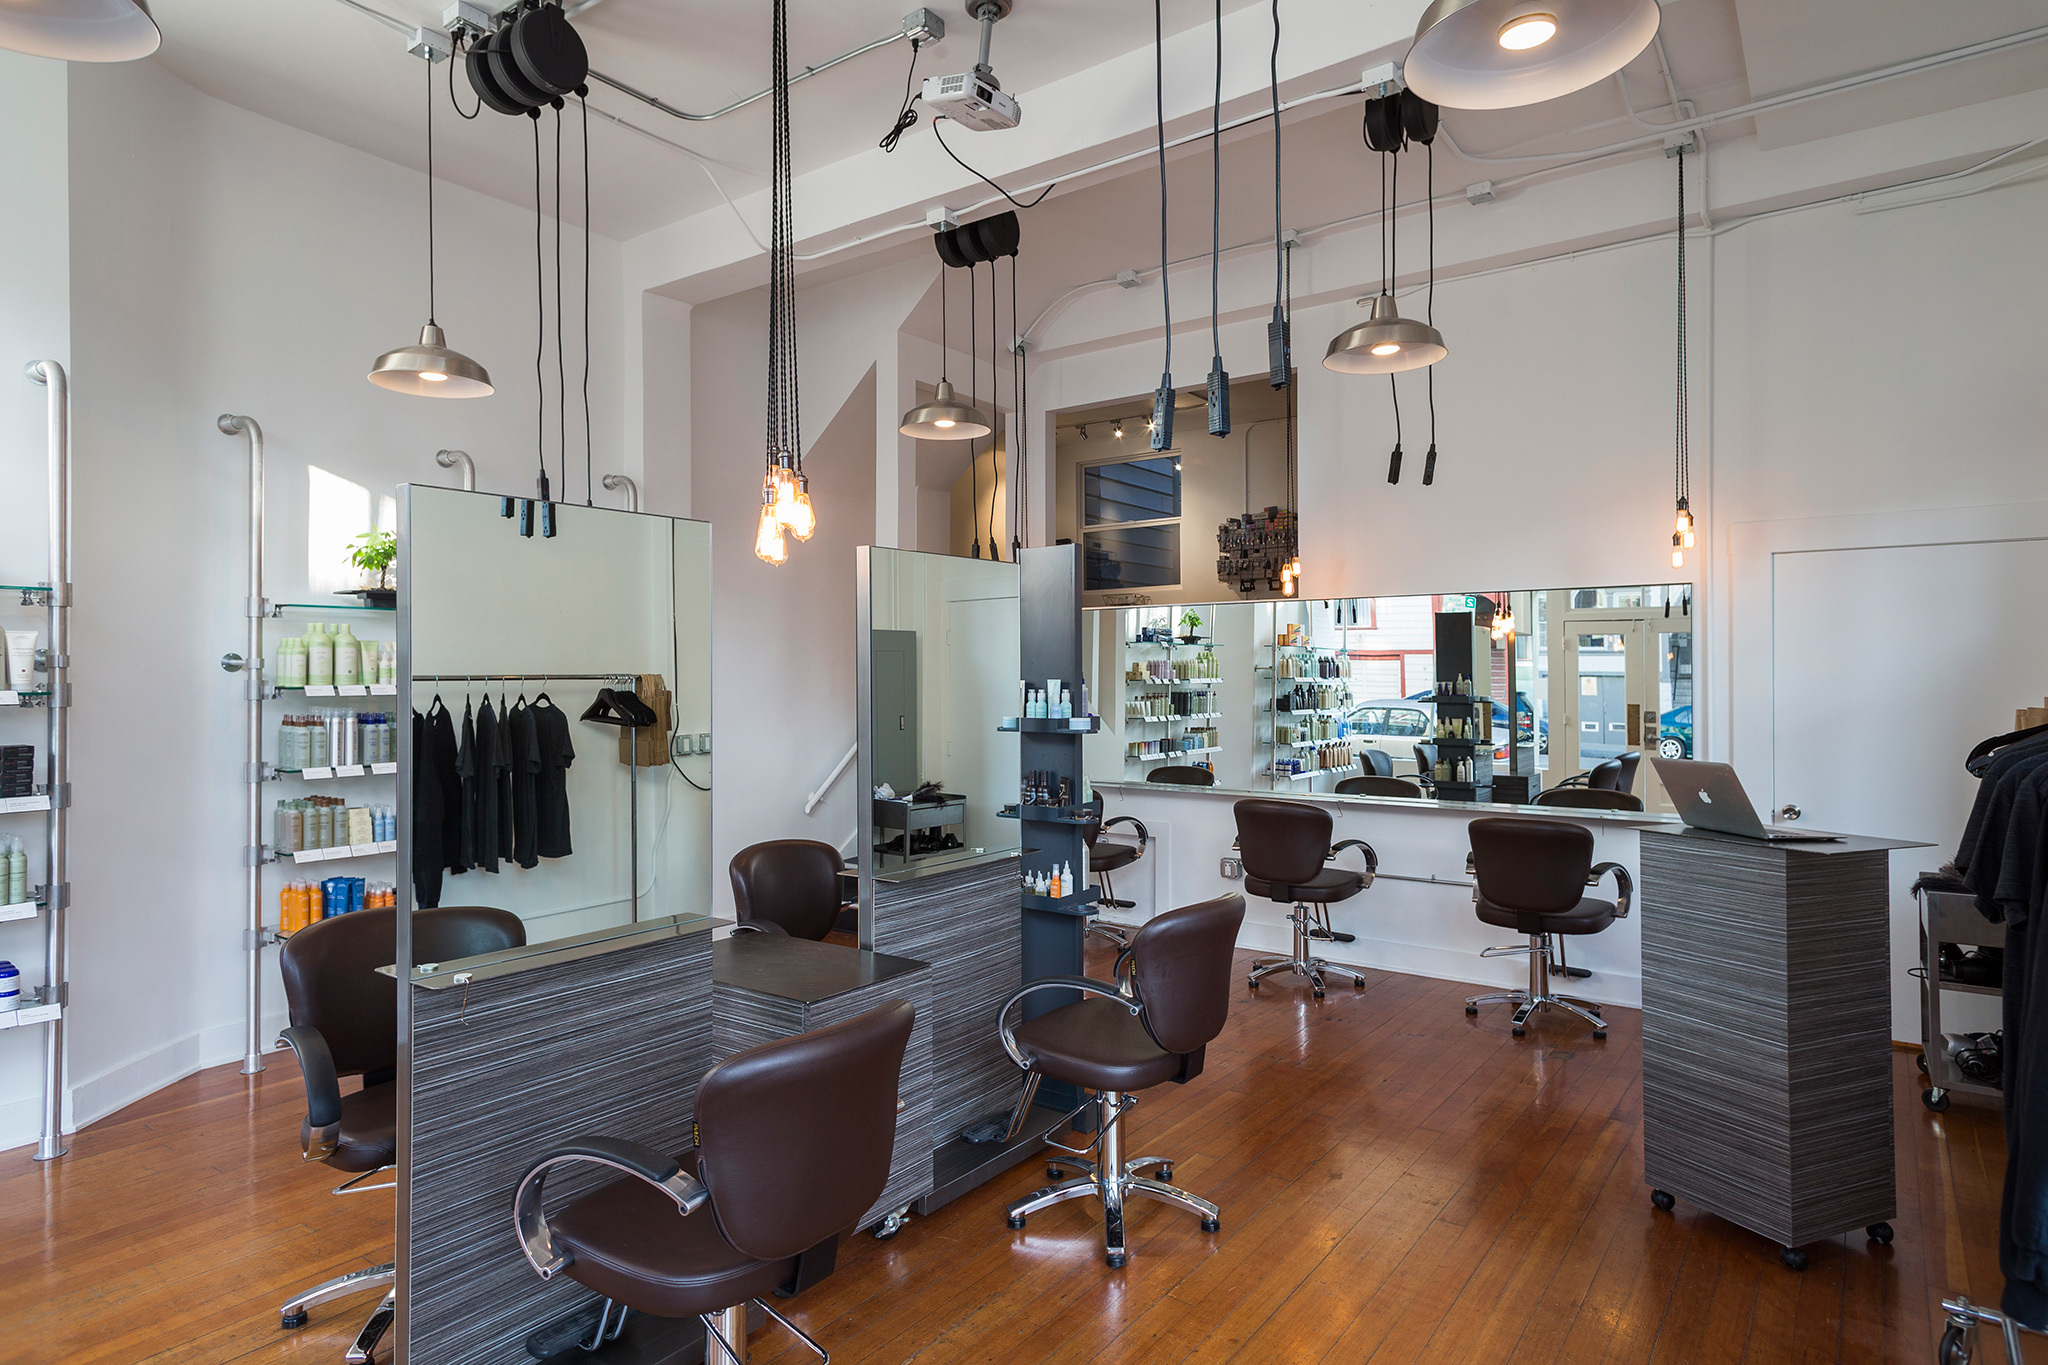 Best hair salons in san francisco for cuts and color for A little luxury beauty salon